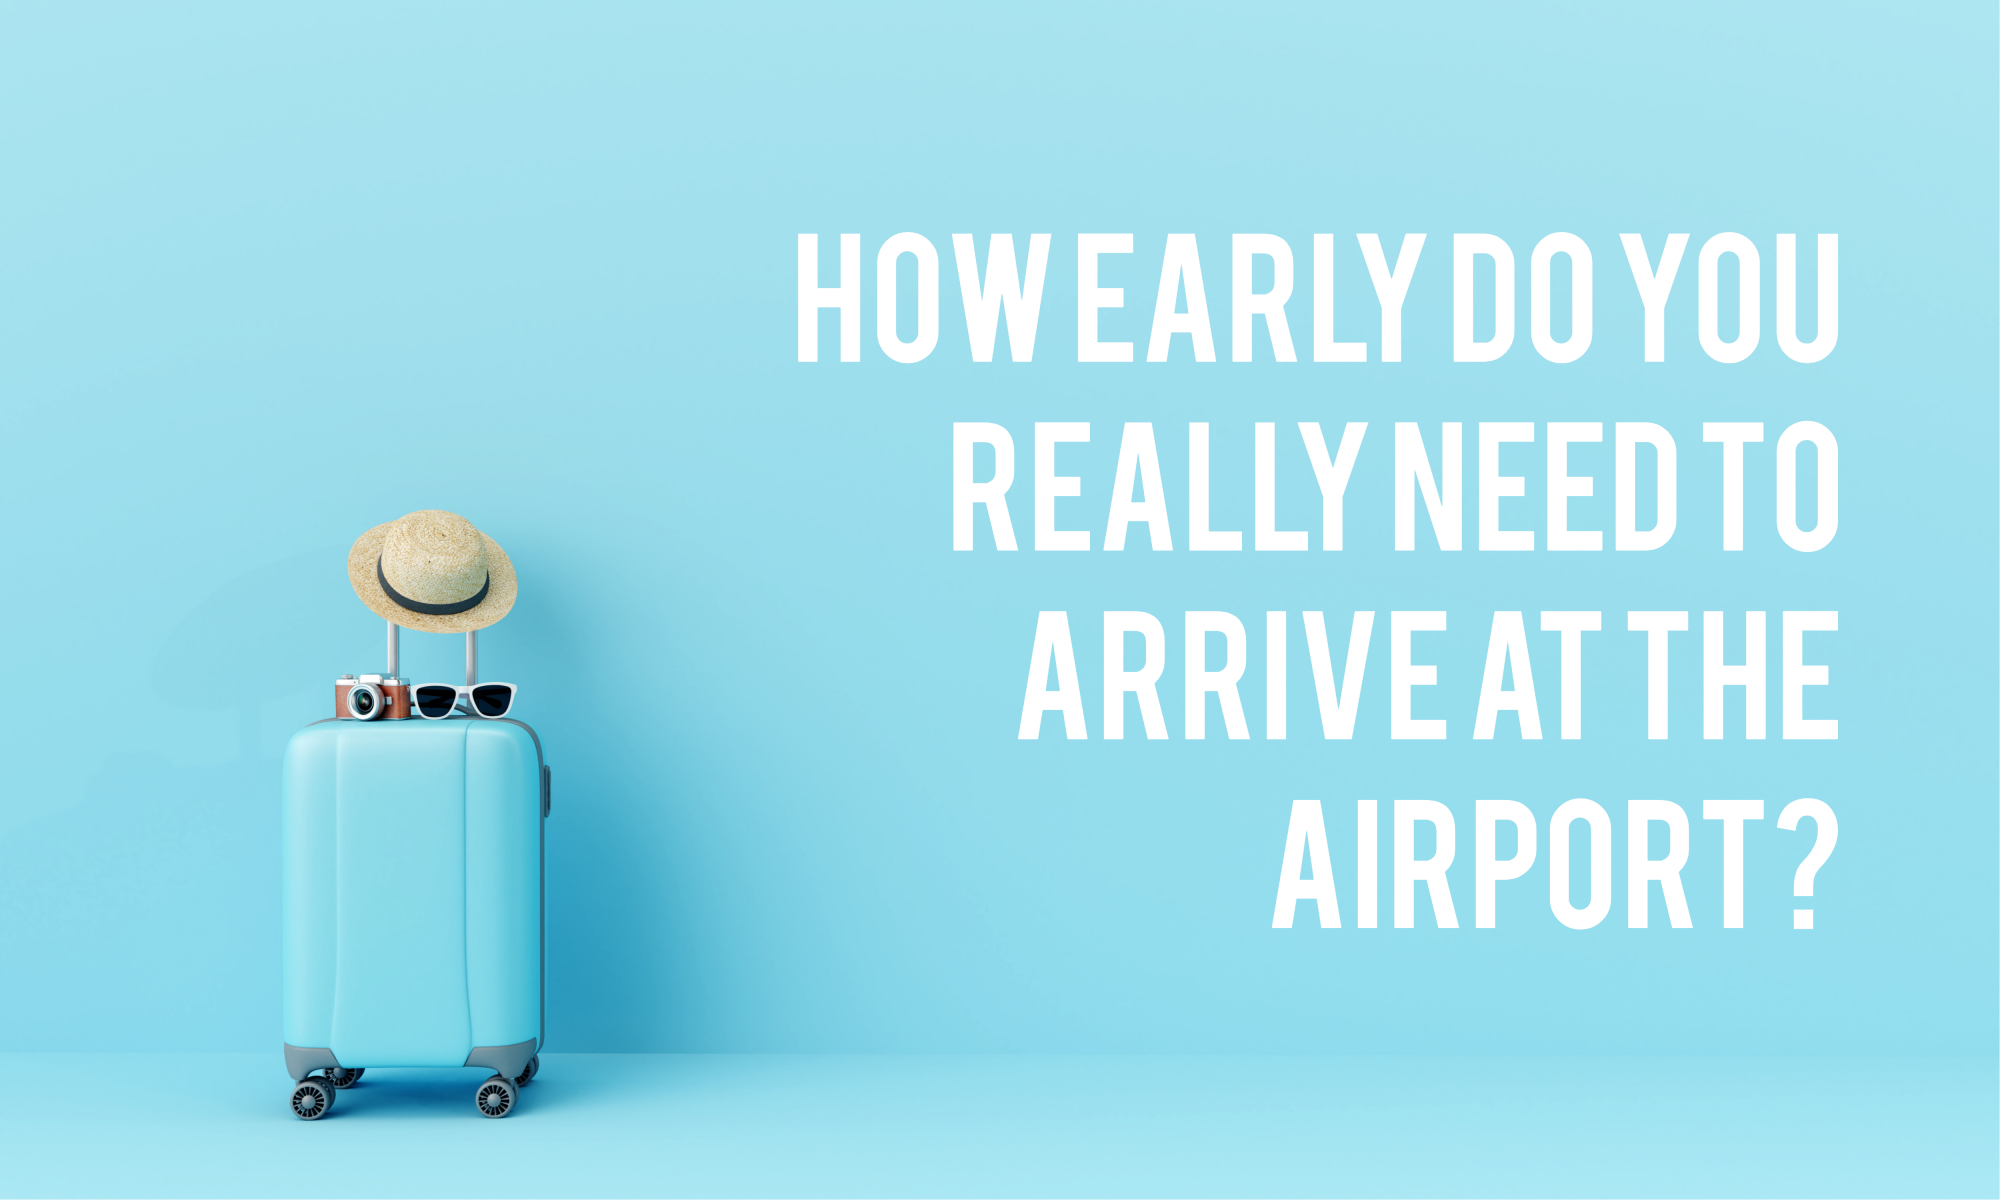 How early do you really need to get to the airport?